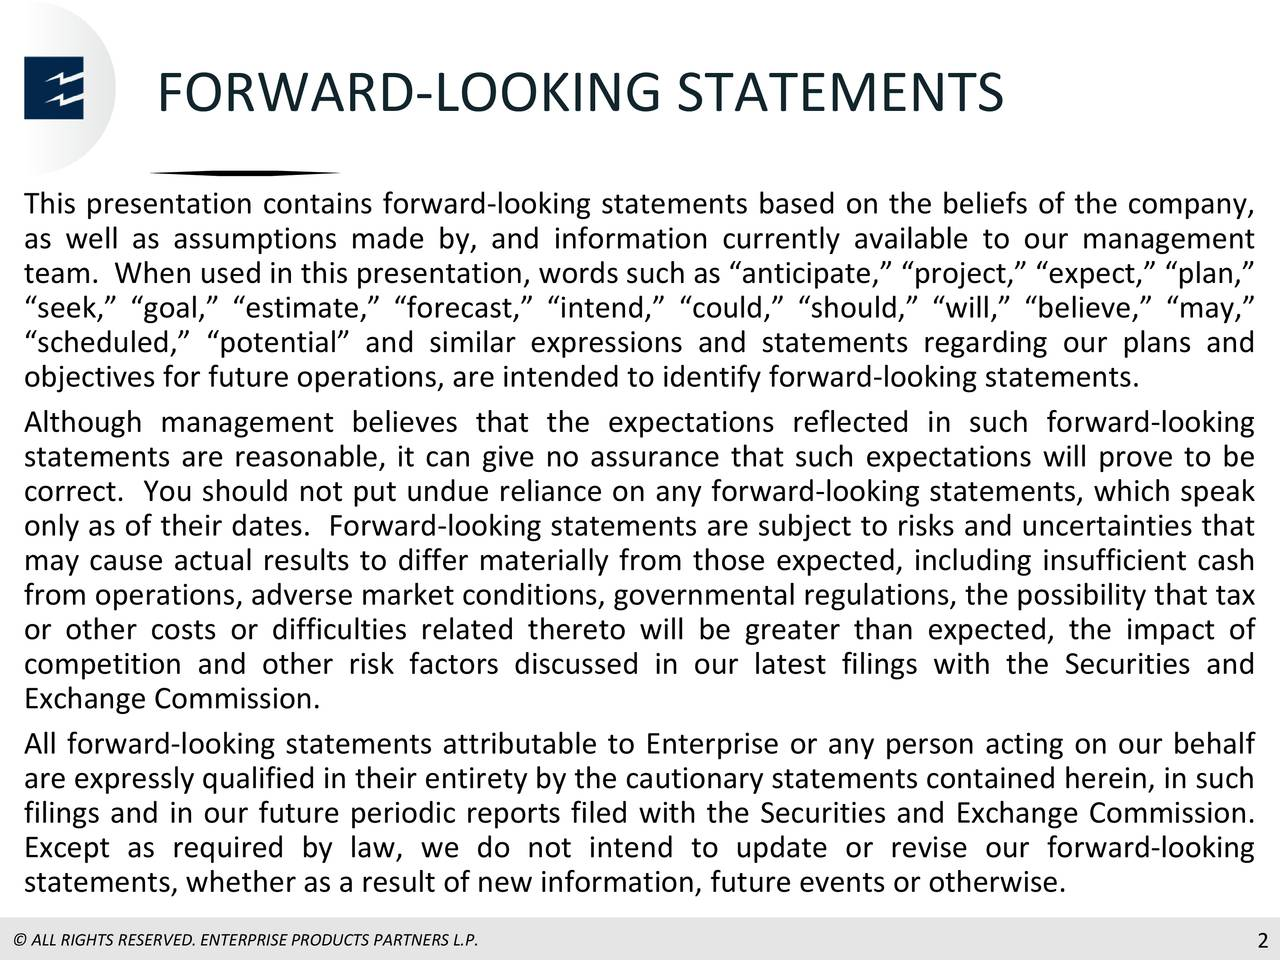 "This presentation contains forward-looking statements based on the beliefs of the company, as well as assumptions made by, and information currently available to our management team. When used in this presentation, words such as ""anticipate,"" ""project,"" ""expect,"" ""plan,"" ""seek,"" ""goal,"" ""estimate,"" ""forecast,"" ""intend,"" ""could,"" ""should,"" ""will,"" ""believe,"" ""may,"" ""scheduled,"" ""potential"" and similar expressions and statements regarding our plans and objectives for future operations, are intended to identify forward-looking statements. Although management believes that the expectations reflected in such forward-looking statements are reasonable, it can give no assurance that such expectations will prove to be correct. You should not put undue reliance on any forward-looking statements, which speak only as of their dates. Forward-looking statements are subject to risks and uncertainties that may cause actual results to differ materially from those expected, including insufficient cash from operations, adverse market conditions, governmental regulations, the possibility that tax or other costs or difficulties related thereto will be greater than expected, the impact of competition and other risk factors discussed in our latest filings with the Securities and Exchange Commission. All forward-looking statements attributable to Enterprise or any person acting on our behalf are expressly qualified in their entirety by the cautionary statements contained herein, in such filings and in our future periodic reports filed with the Securities and Exchange Commission. Except as required by law, we do not intend to update or revise our forward-looking statements, whether as a result of new information, future events or otherwise."